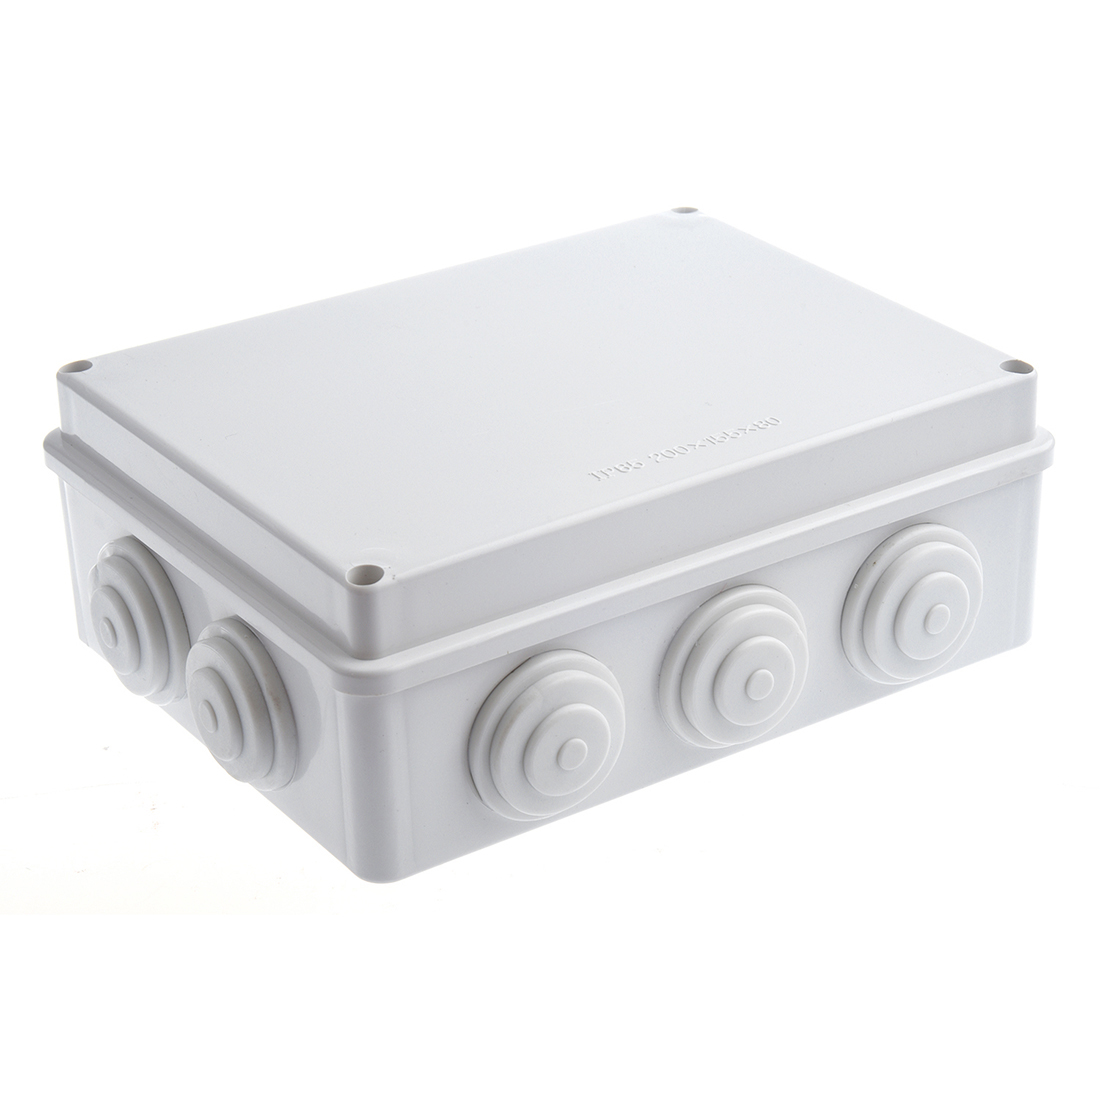 High Quality White ABS IP65 Waterproof Enclosure Junction Box 200mmx155mmx80mm<br><br>Aliexpress